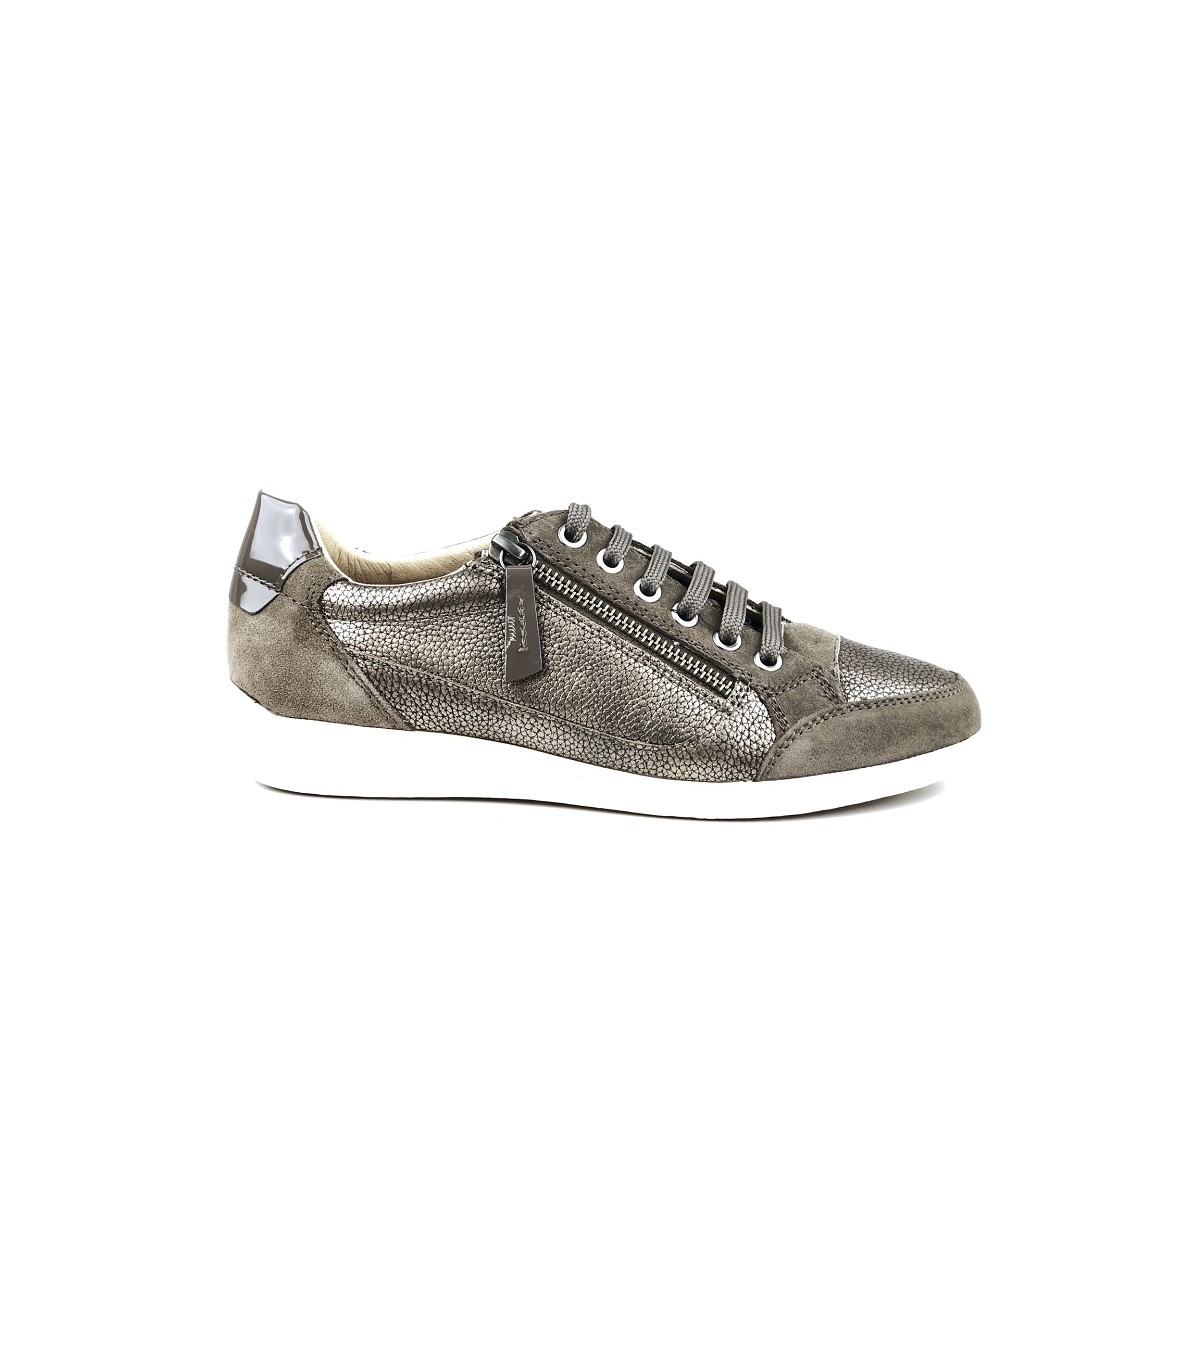 Baskets Femme GEOX MYRIA basses plomb/taupe|Univers Chaussures